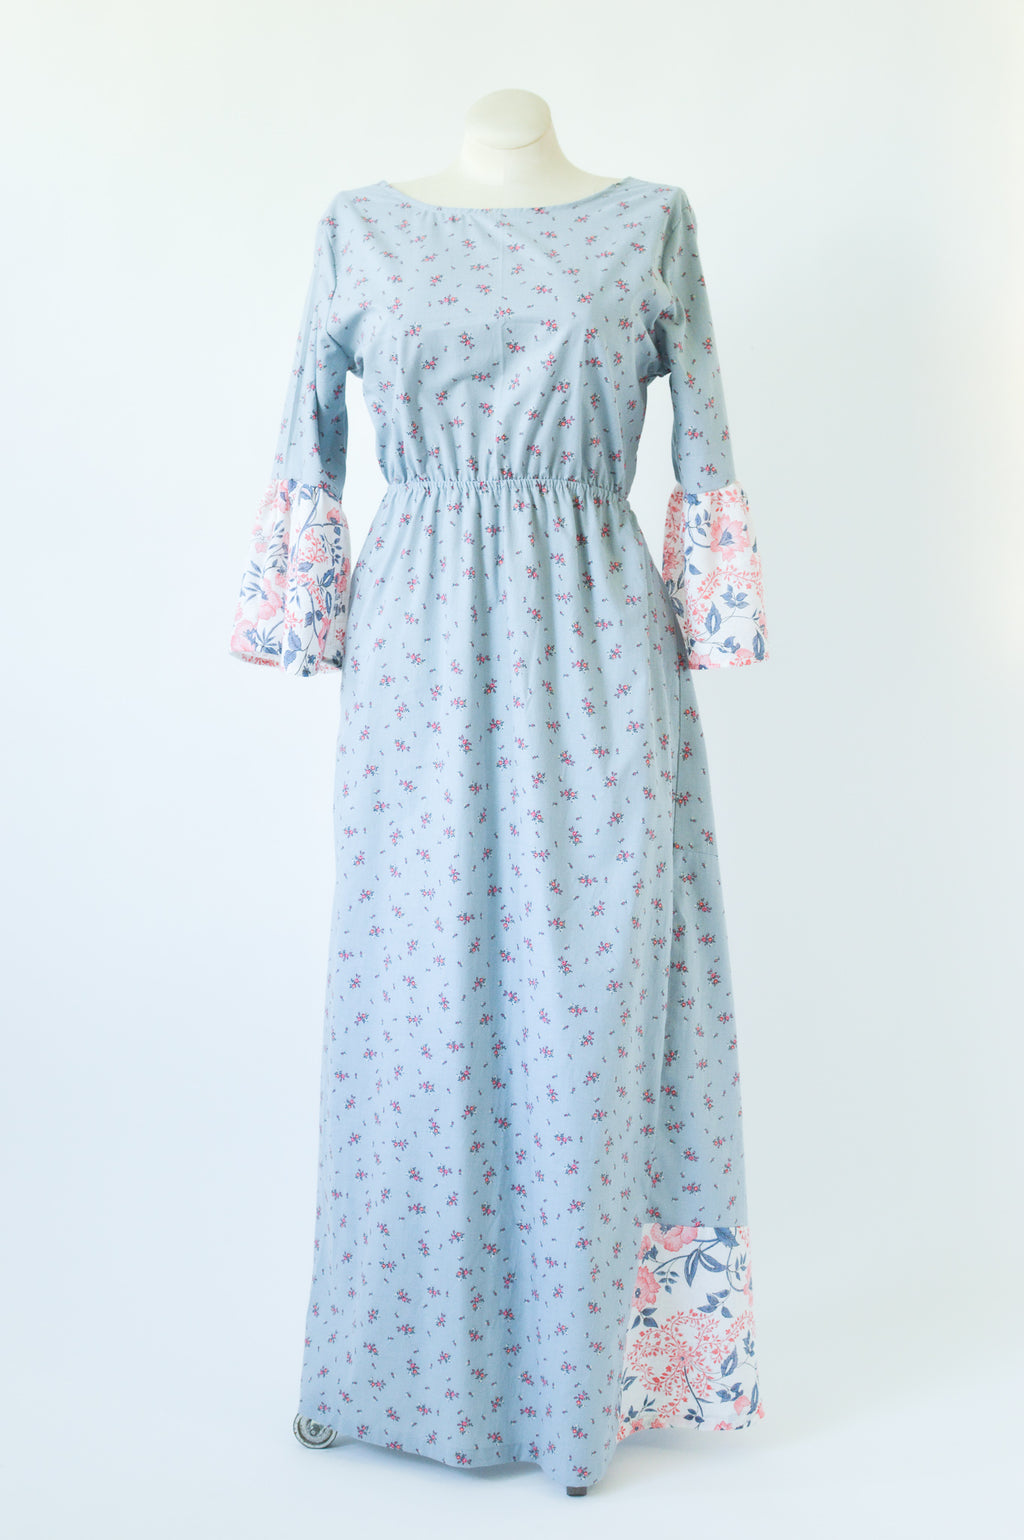 The Emma Dress in Dusk Blue Garden